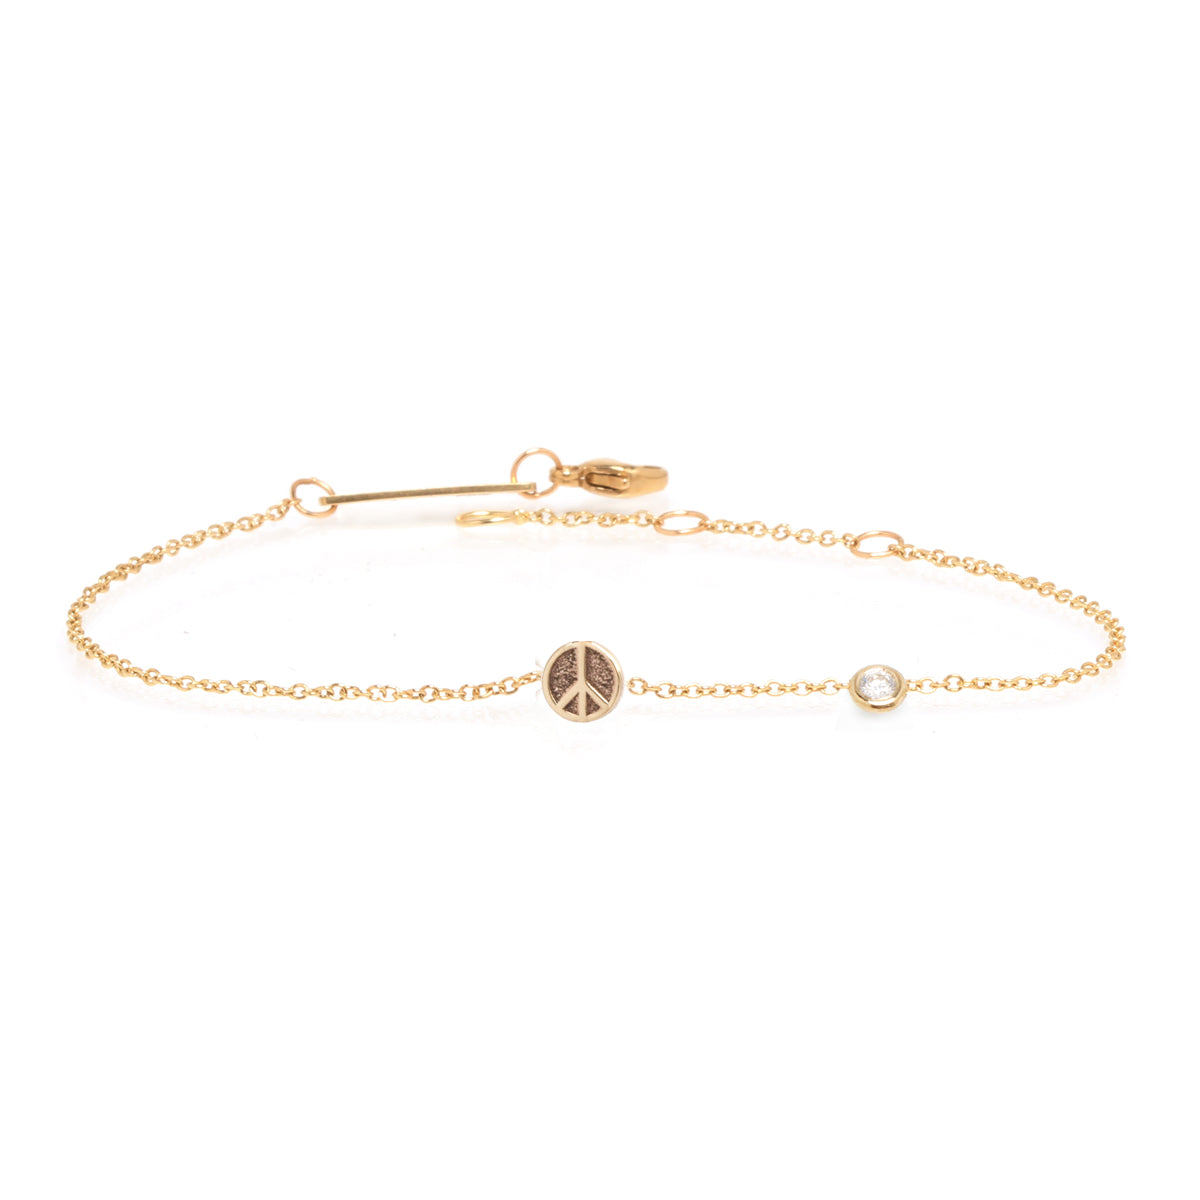 14k itty bitty peace sign bracelet with floating diamond